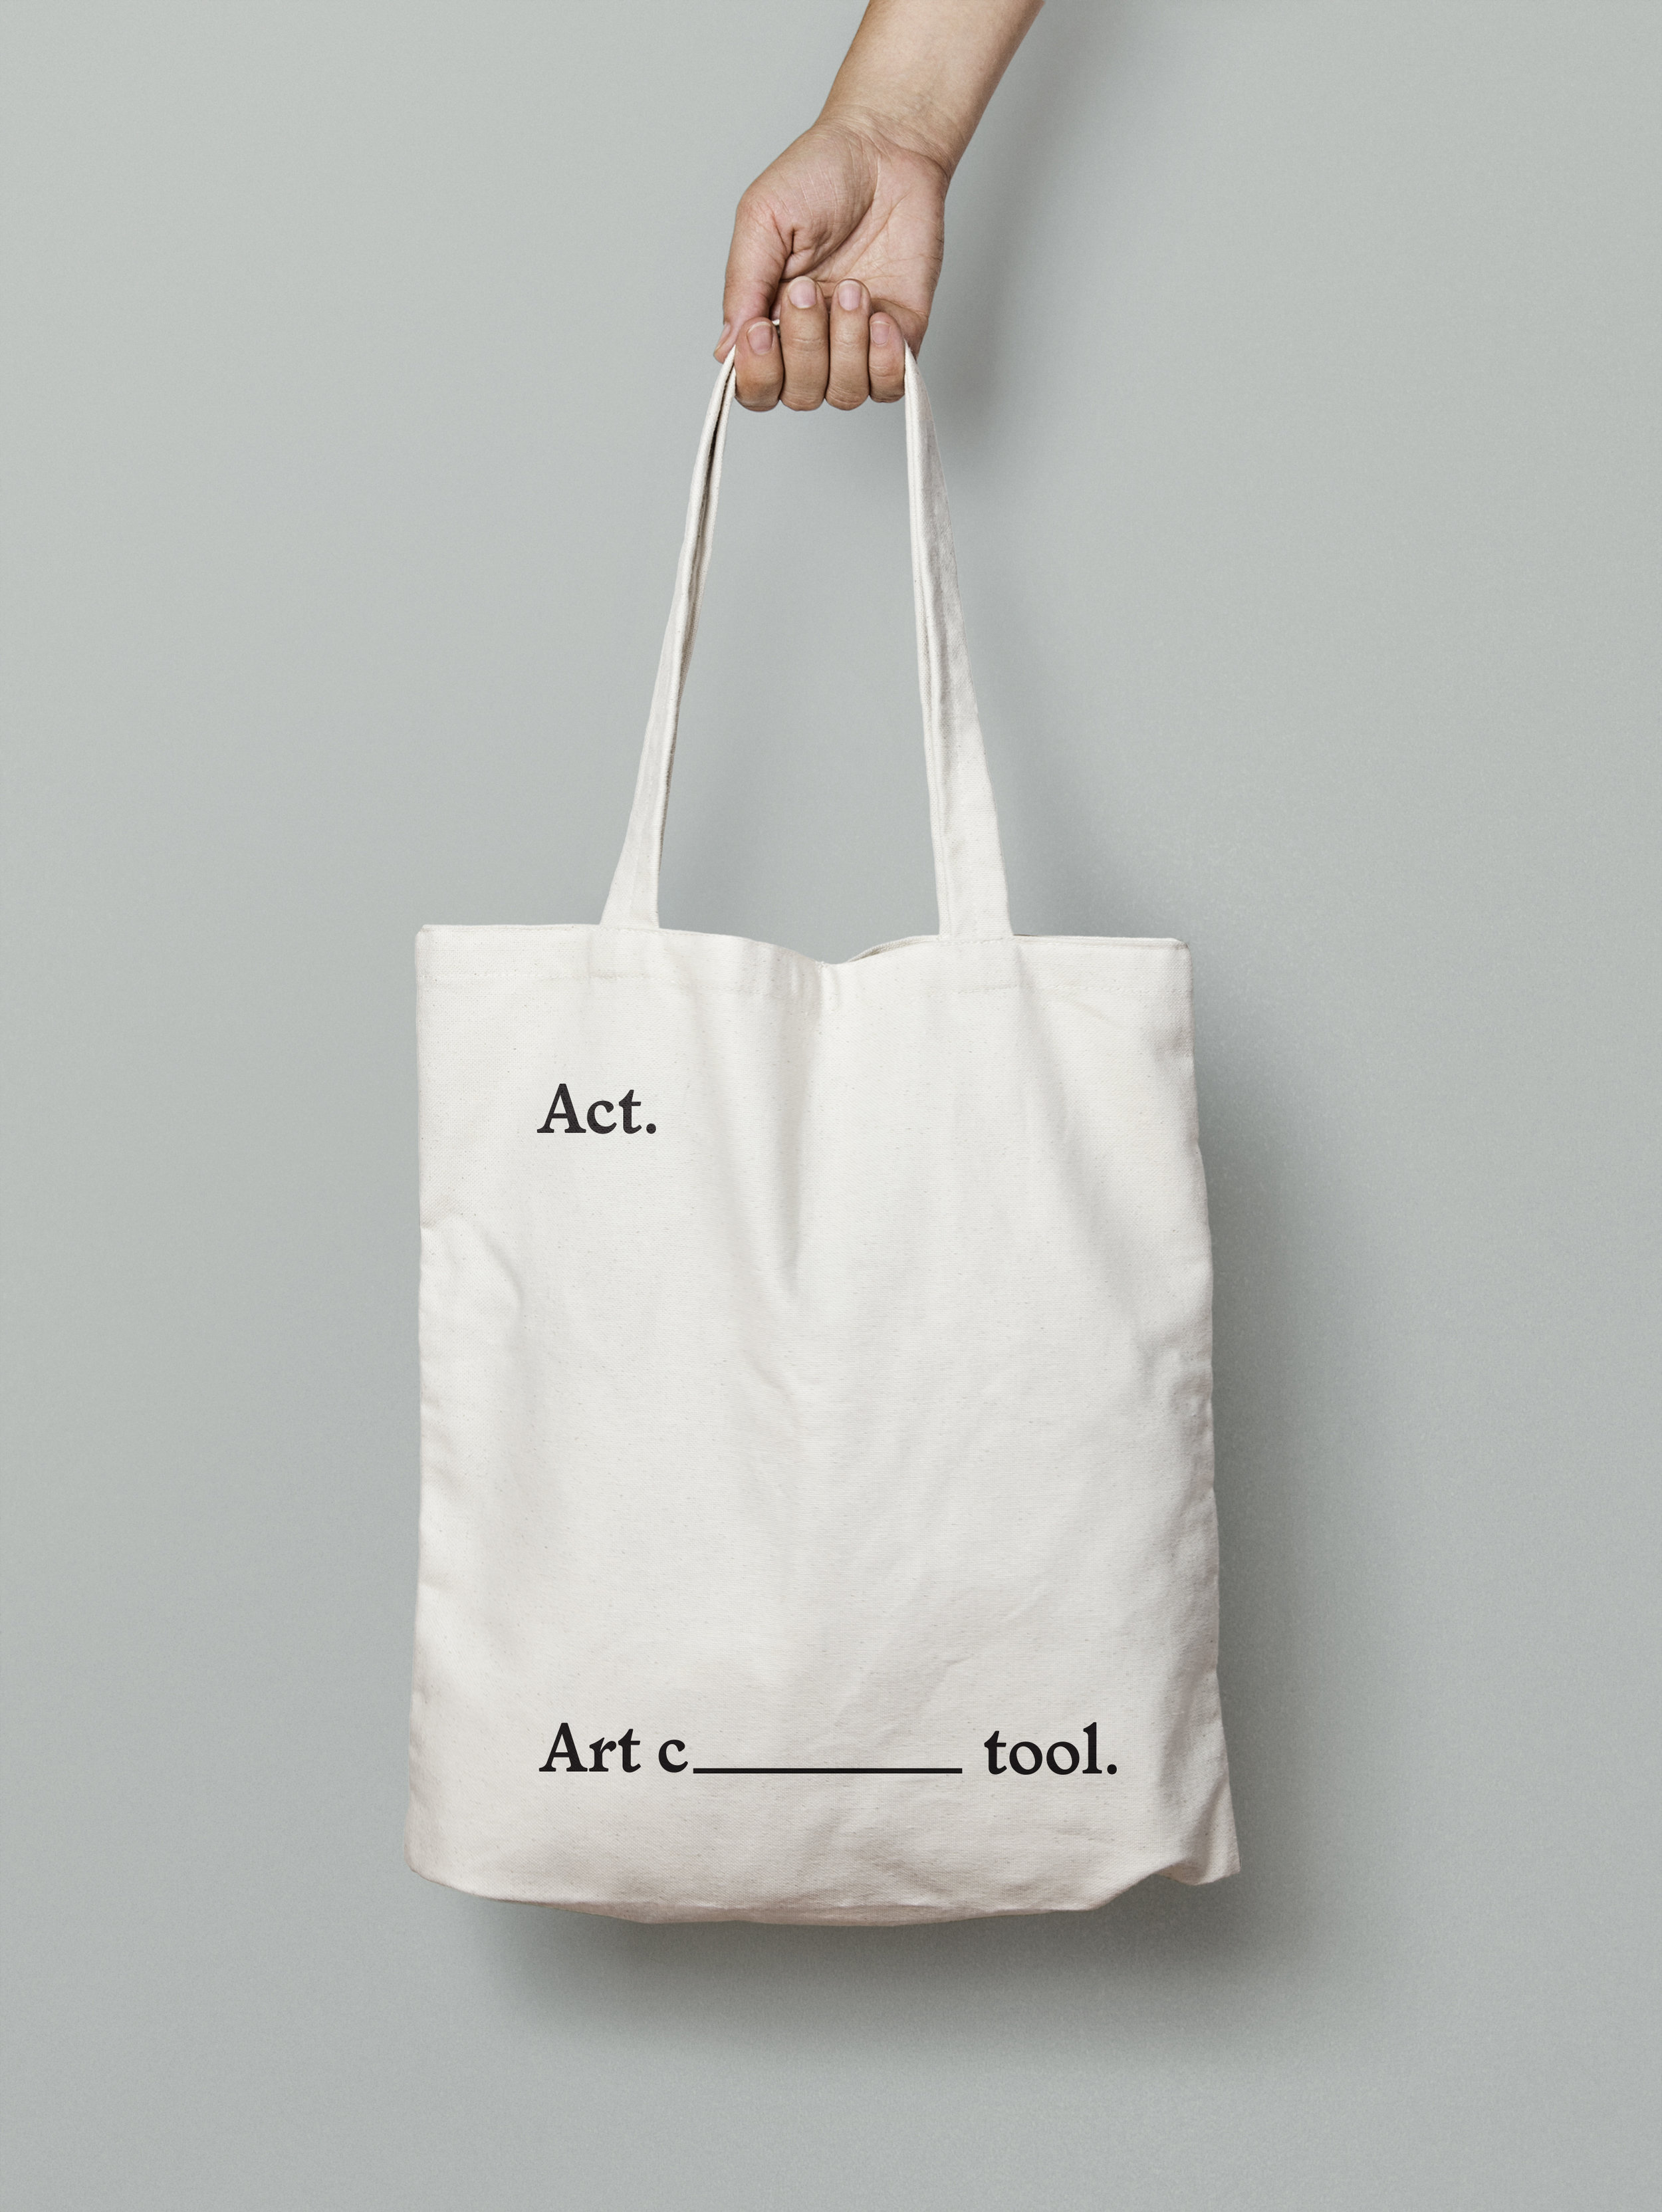 Tote Bag Act.jpg